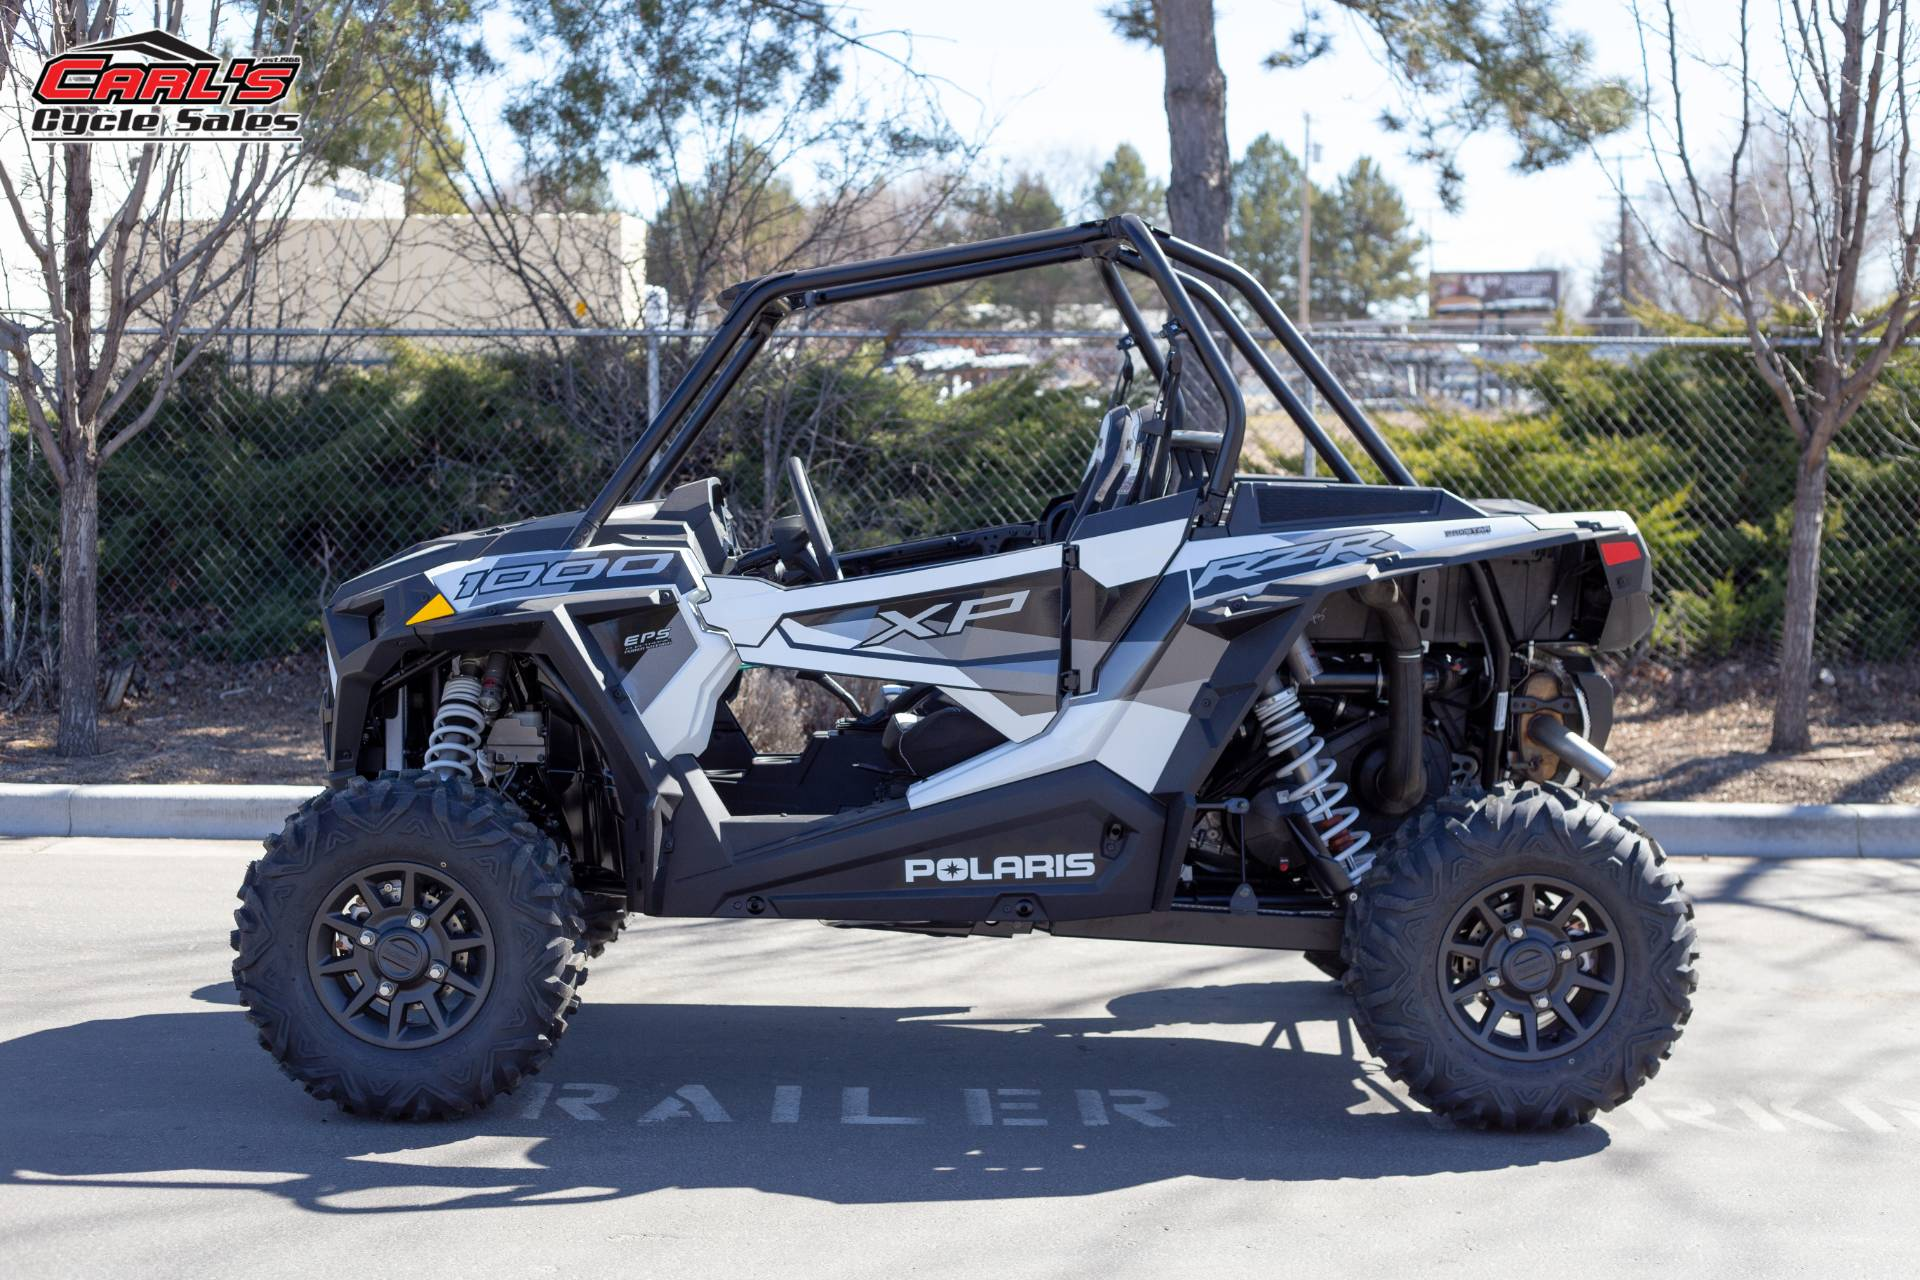 2019 Polaris RZR XP 1000 in Boise, Idaho - Photo 1